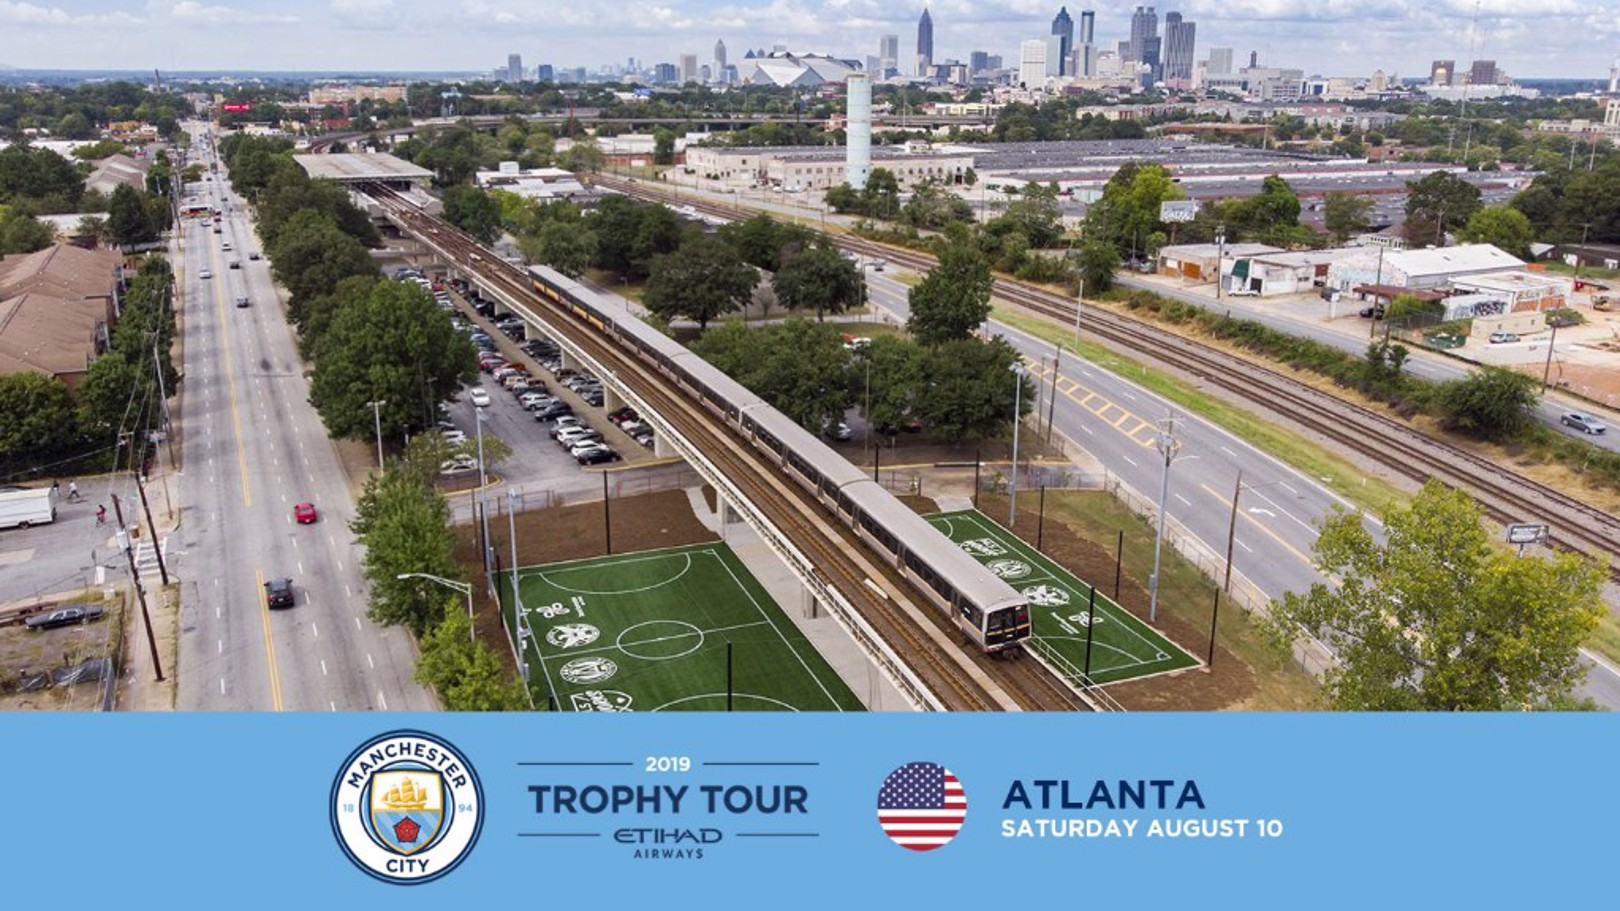 STATESIDE: The Manchester City trophy tour will visit Atlanta in August 2019.